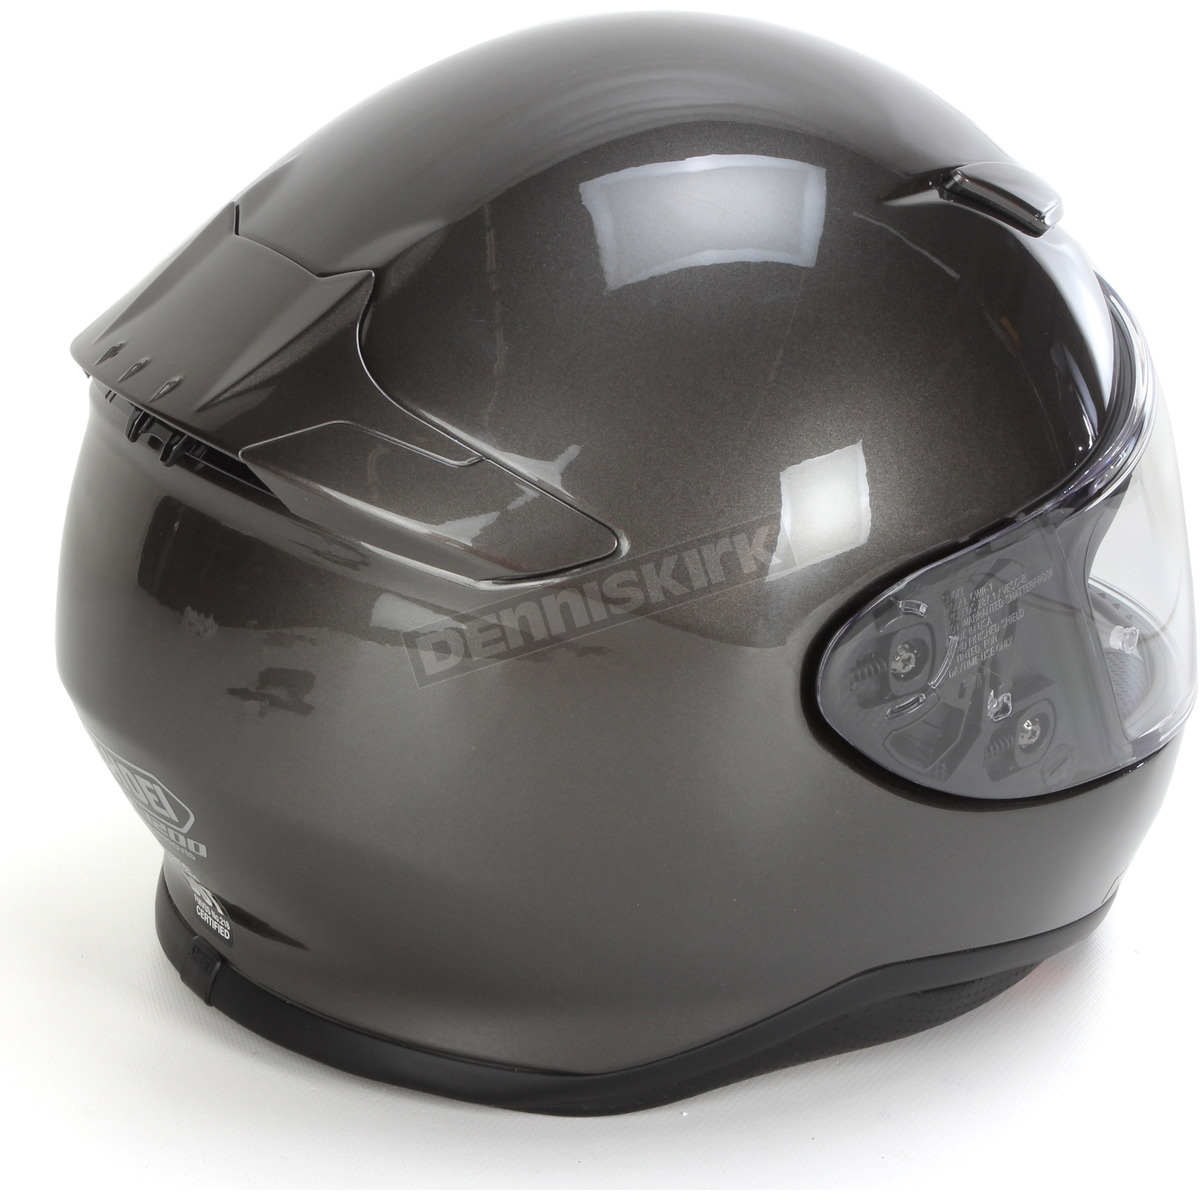 dc3948e7 Shoei Helmets Anthracite Metallic RF-1200 Helmet - 0109-0117-03 ...